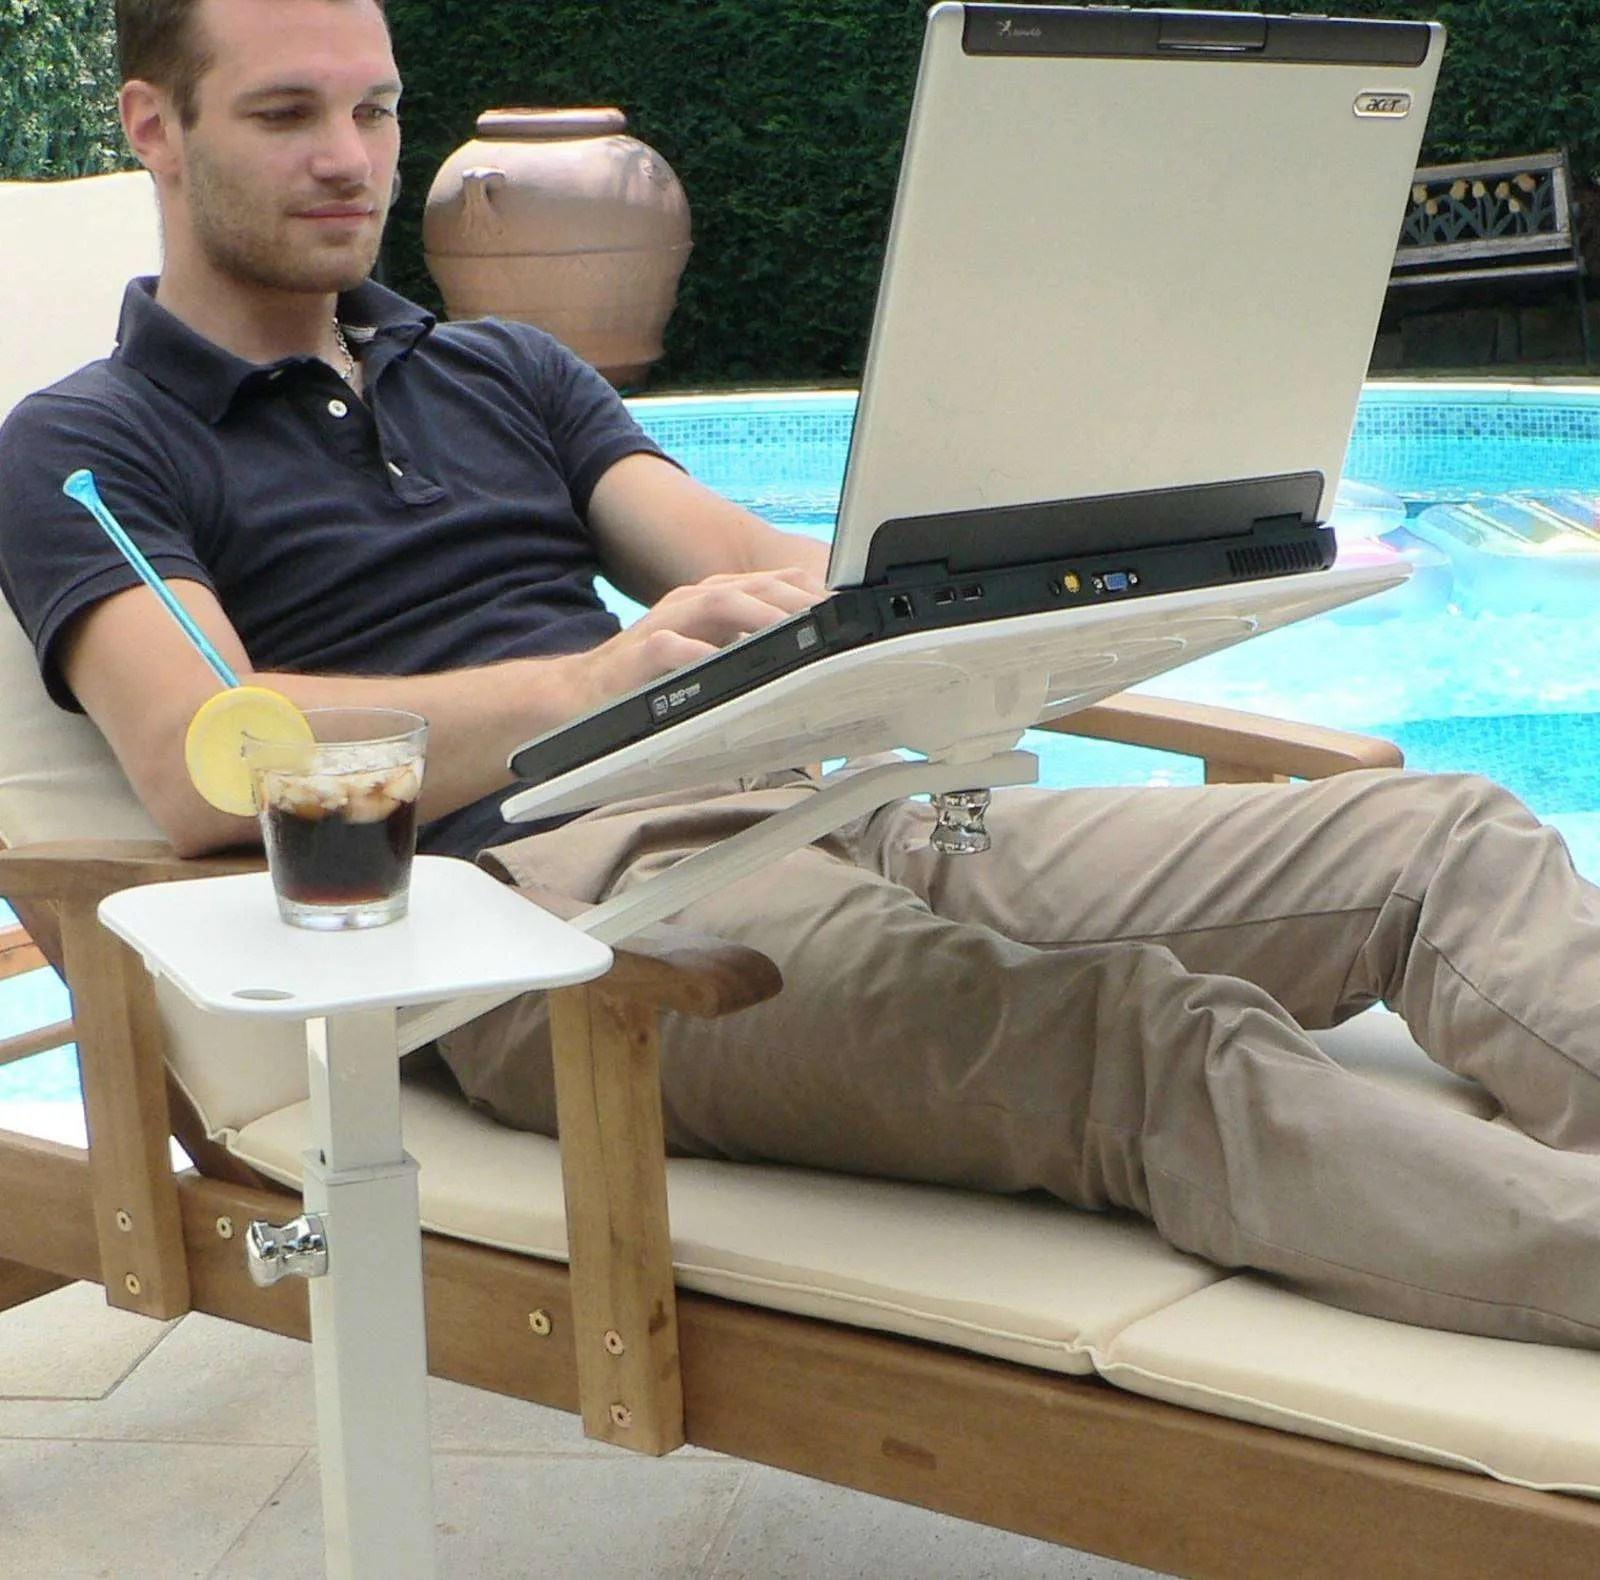 Use your laptop outdoor on garden or terrace with Lounge-tek ergonomic support. Fully adjustable furniture to create a laptop desk.